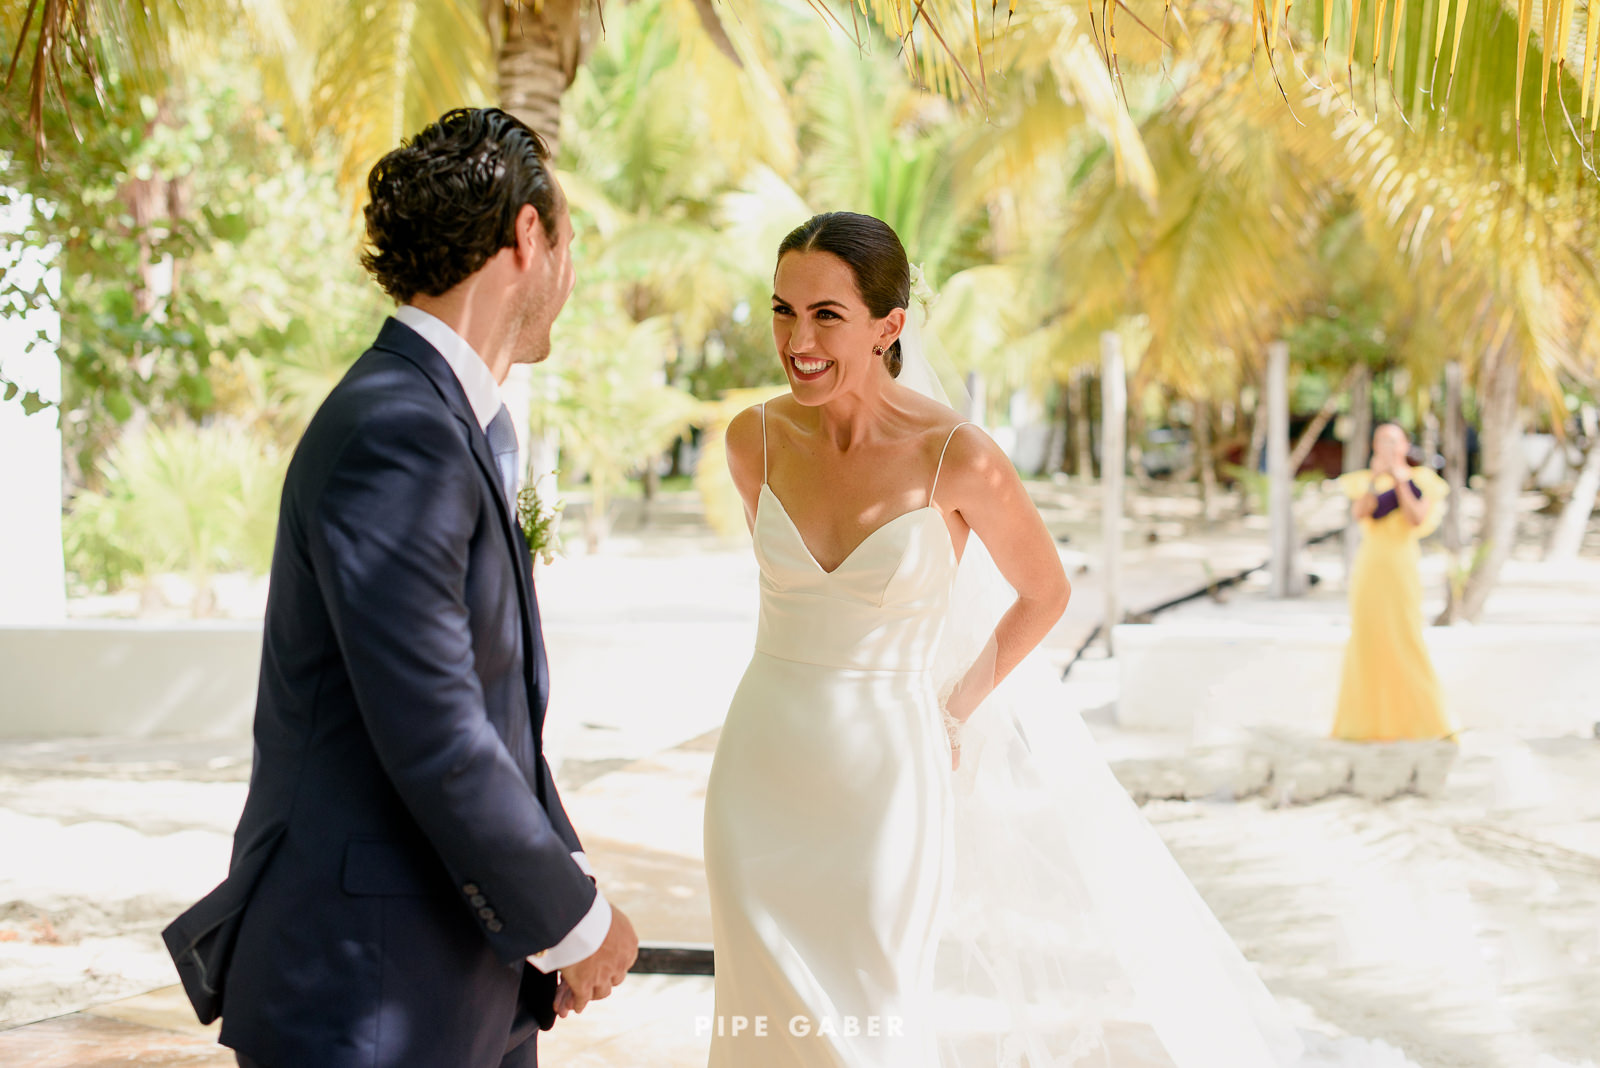 Wedding_phographer_Yucatan_beach_3.JPG